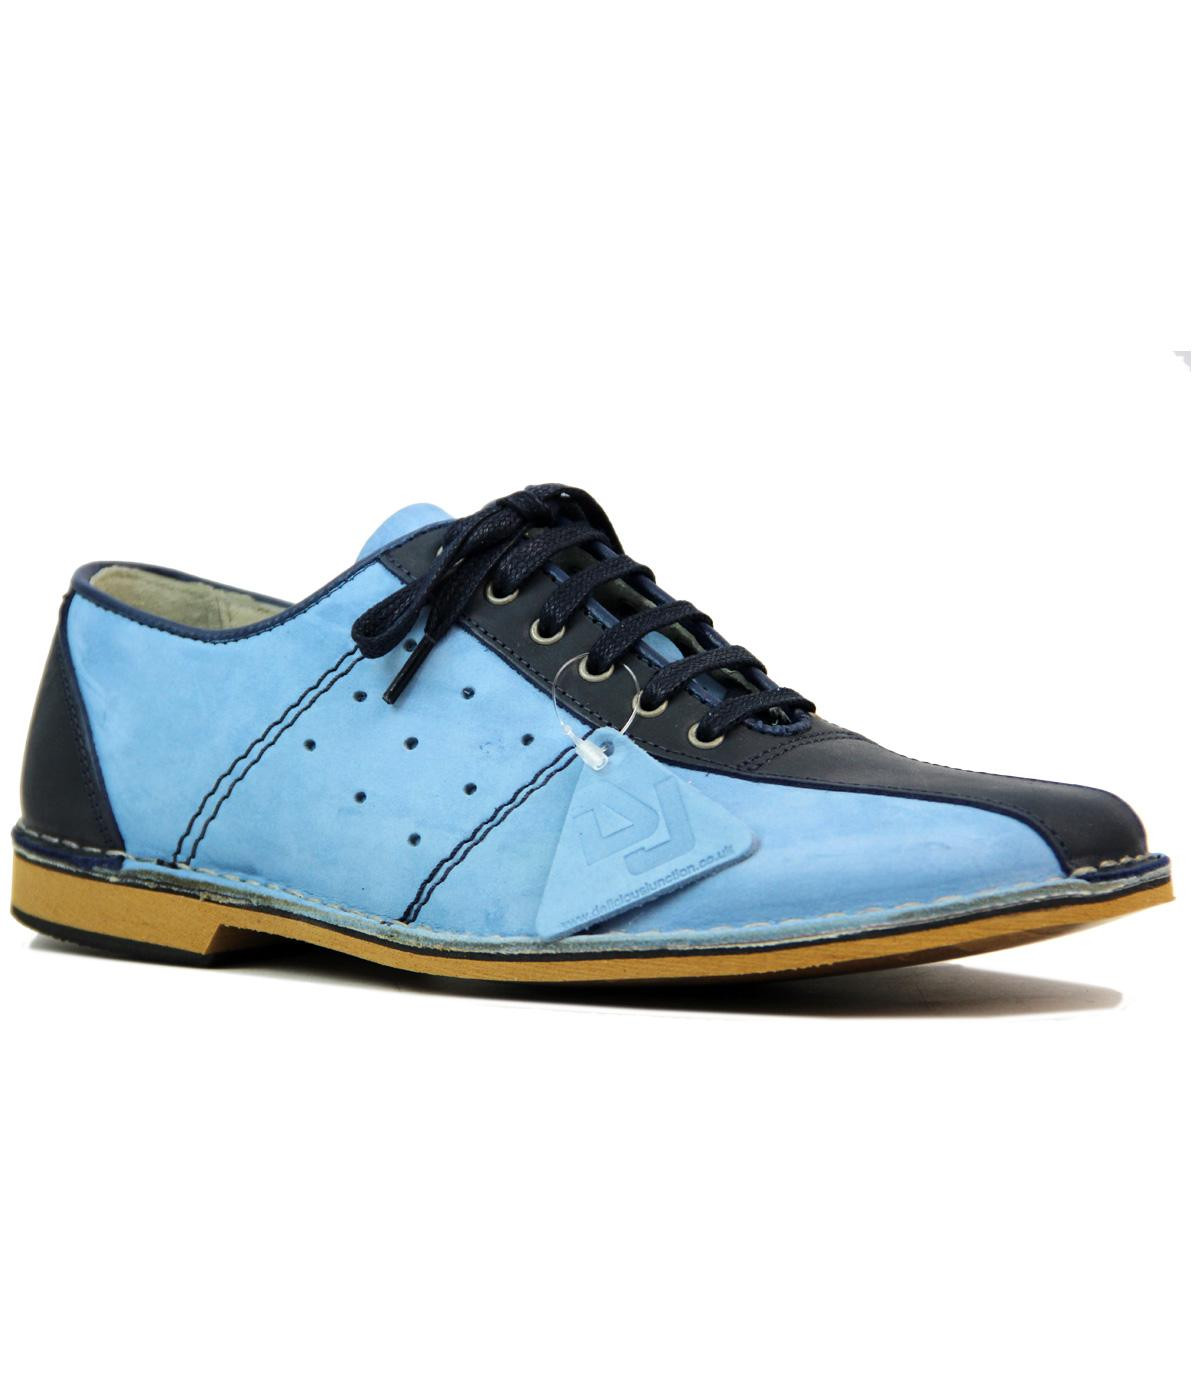 buy online 10010 f941d DELICIOUS JUNCTION Watts Retro Mod Bowling Shoes in Light Blue